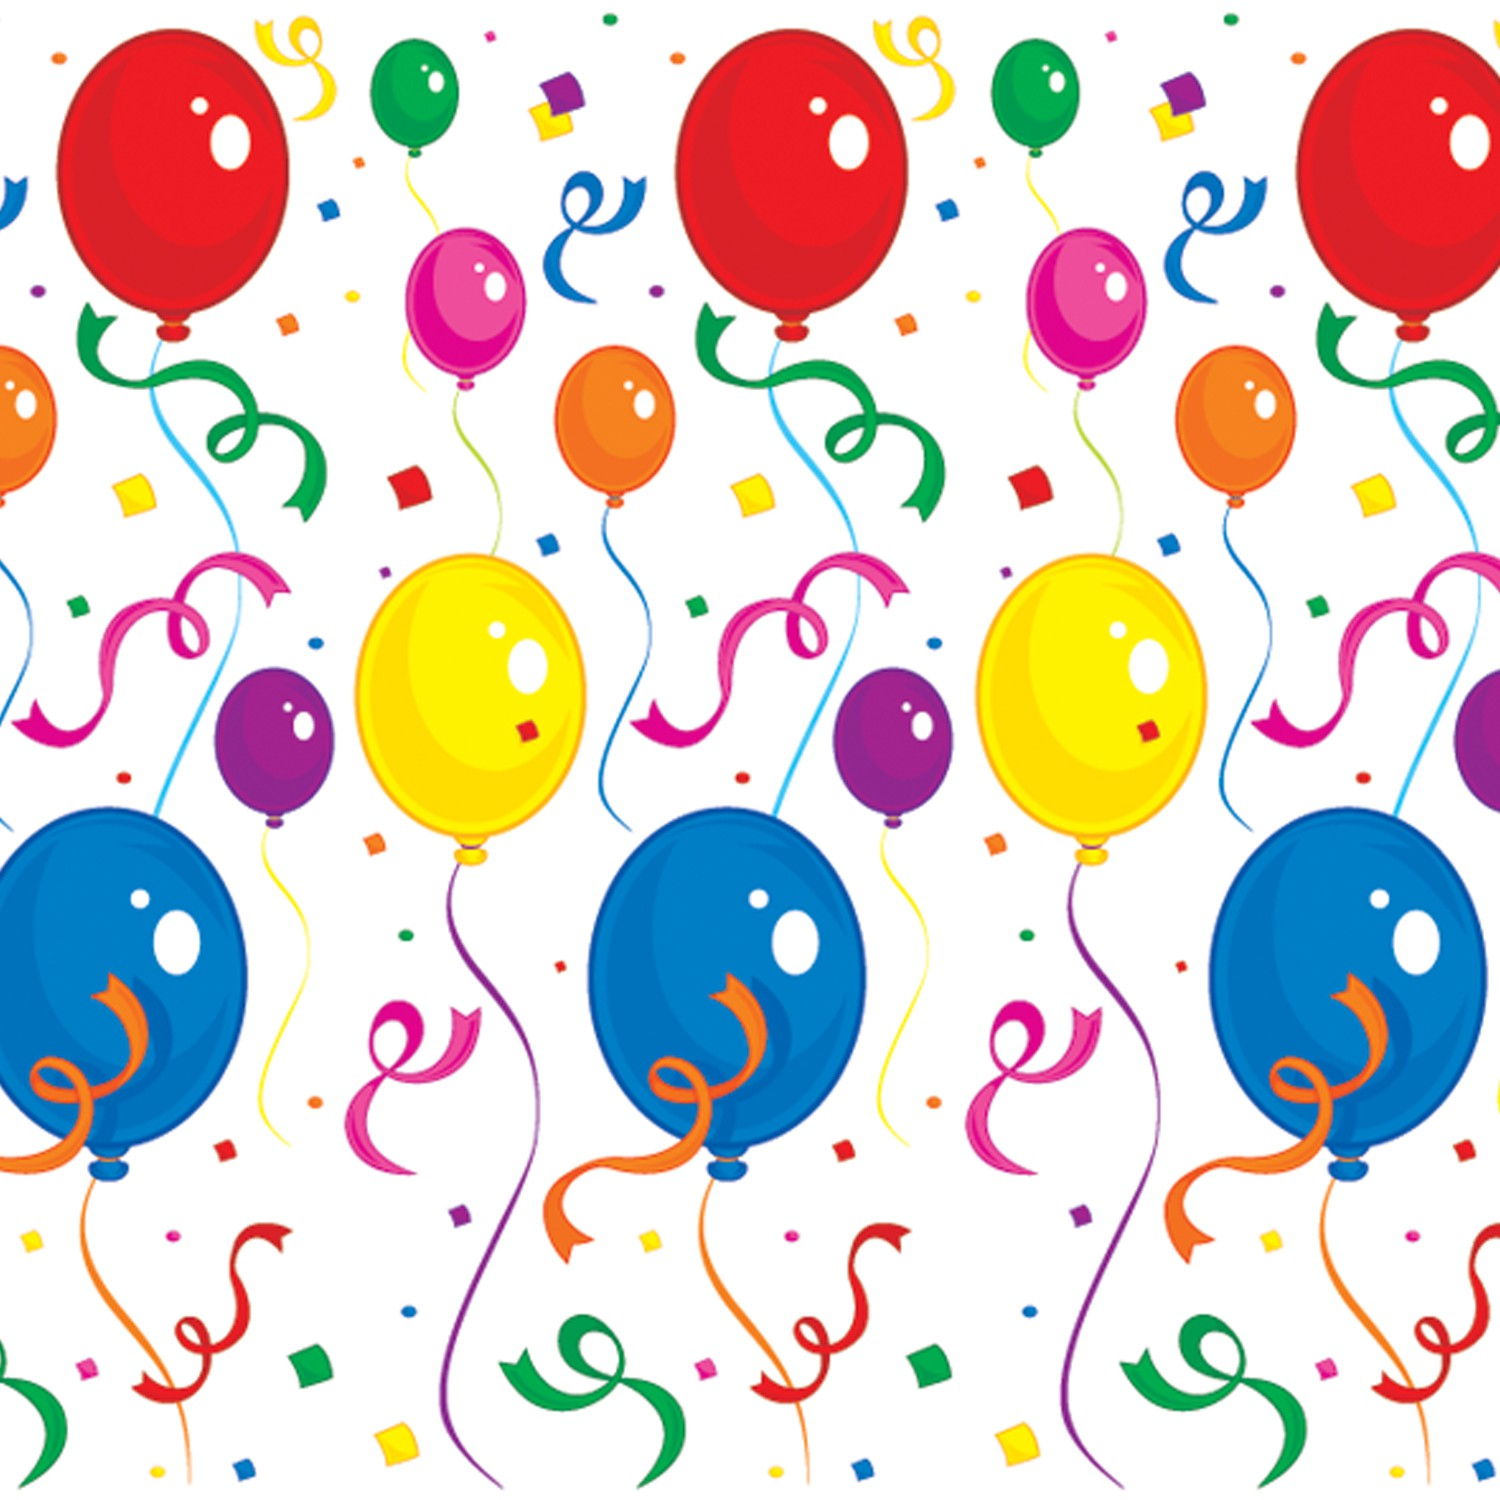 Balloons   Confetti Vinyl Backdrop 122cm Birthday Party Decorations